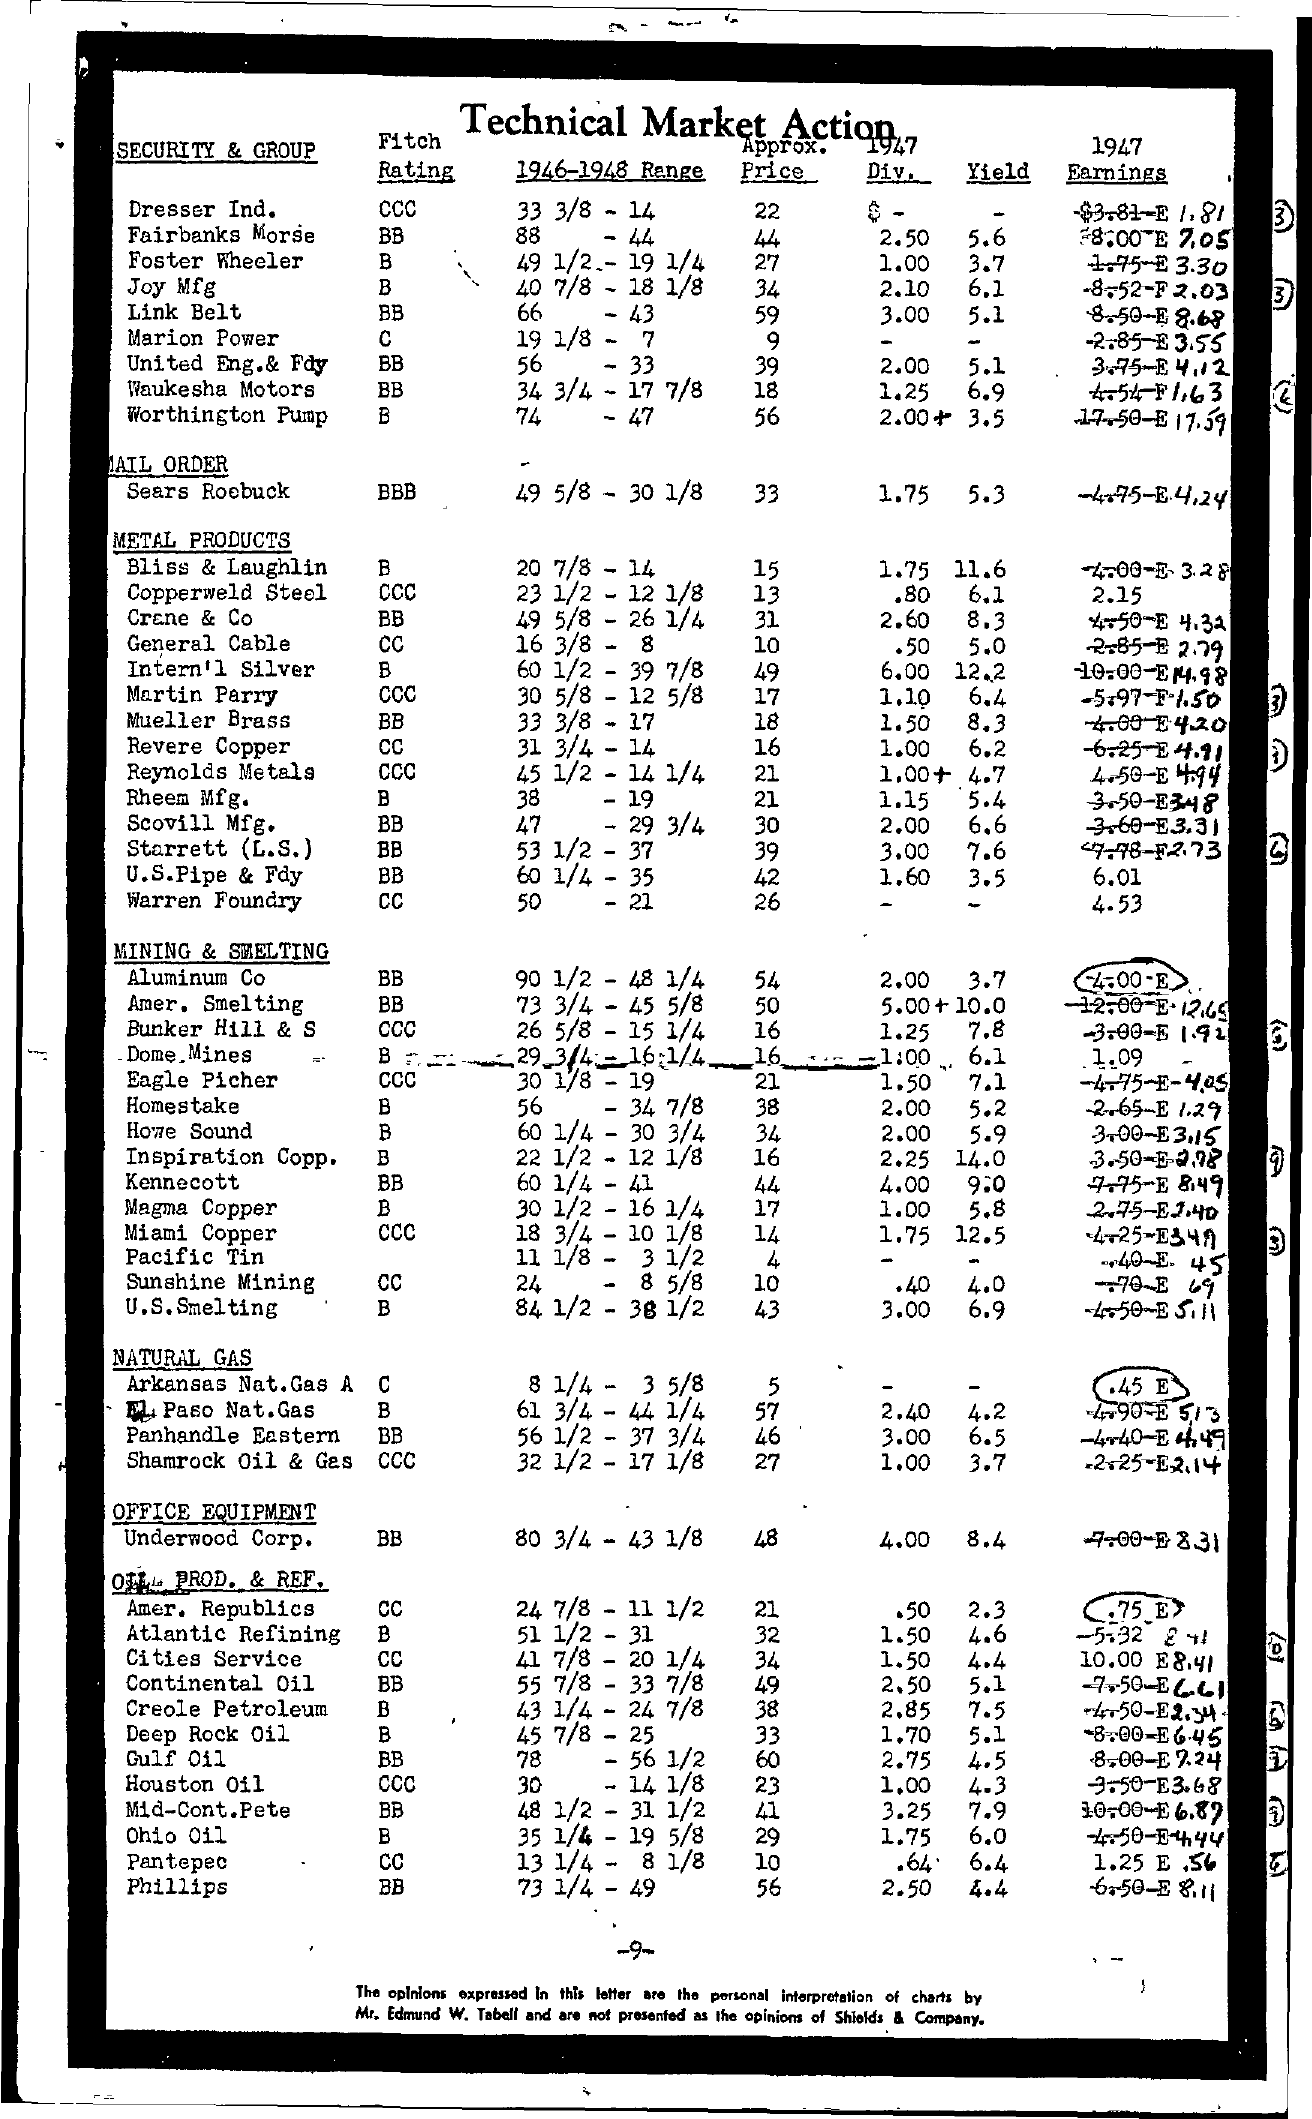 Tabell's Market Letter - February 11, 1948 - Page 9